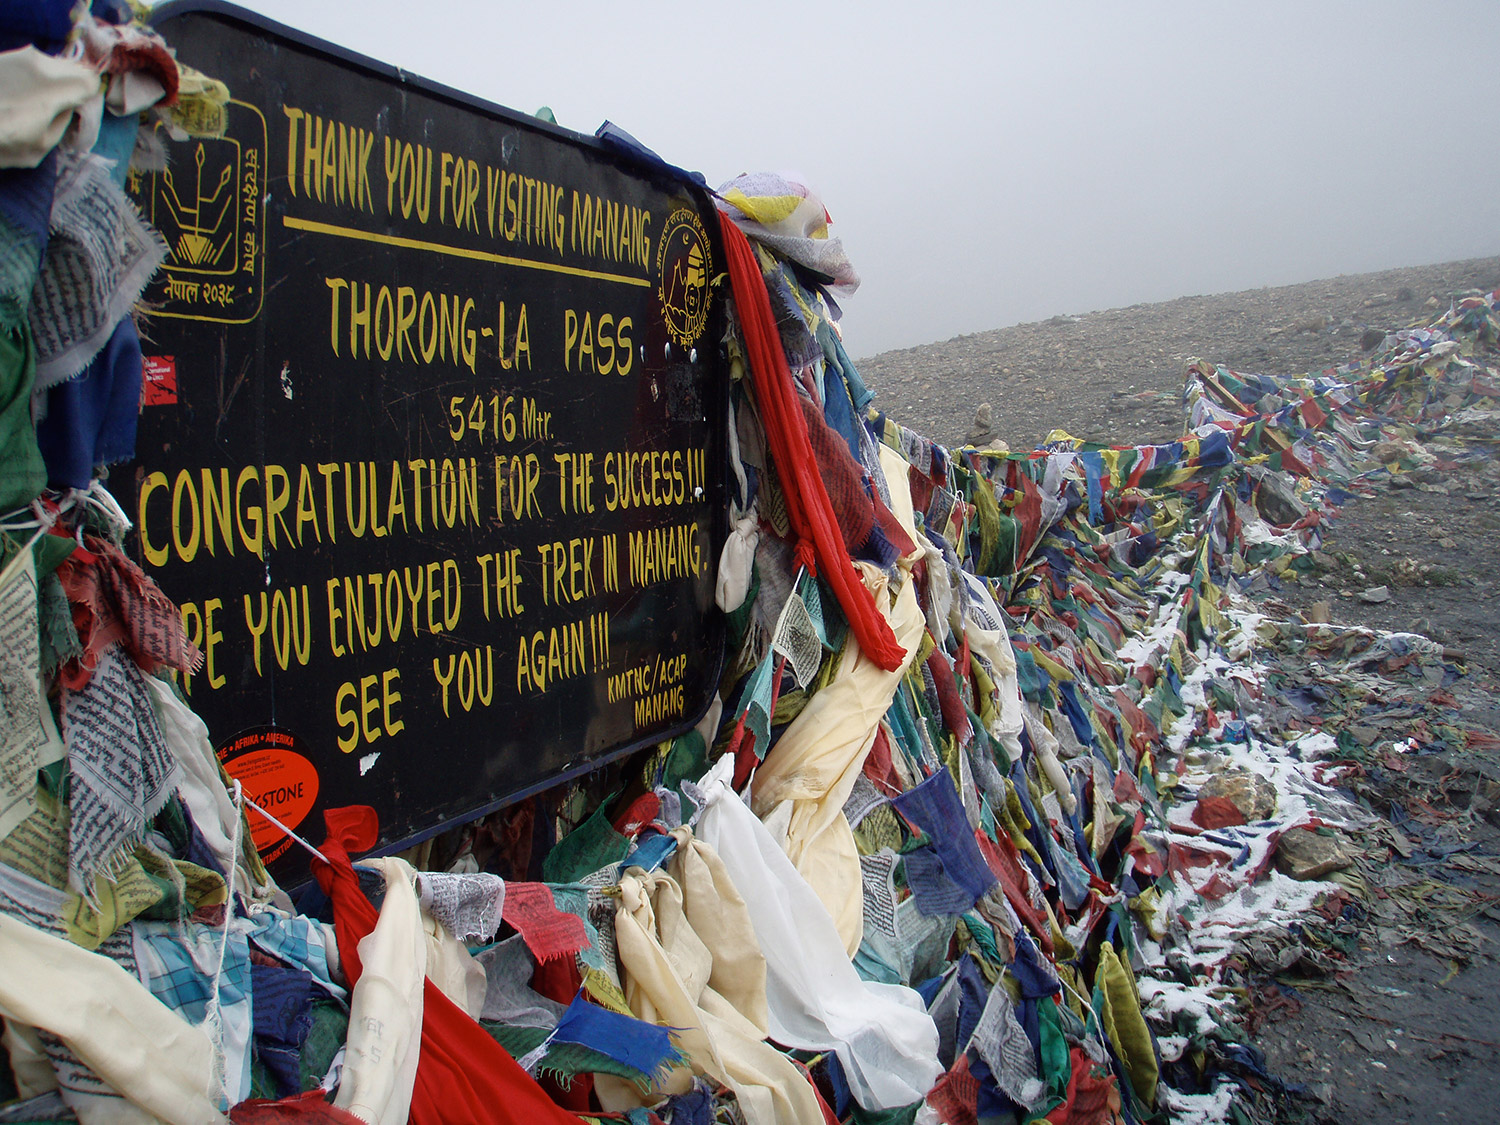 Thorong-La Pass, 5416 meters